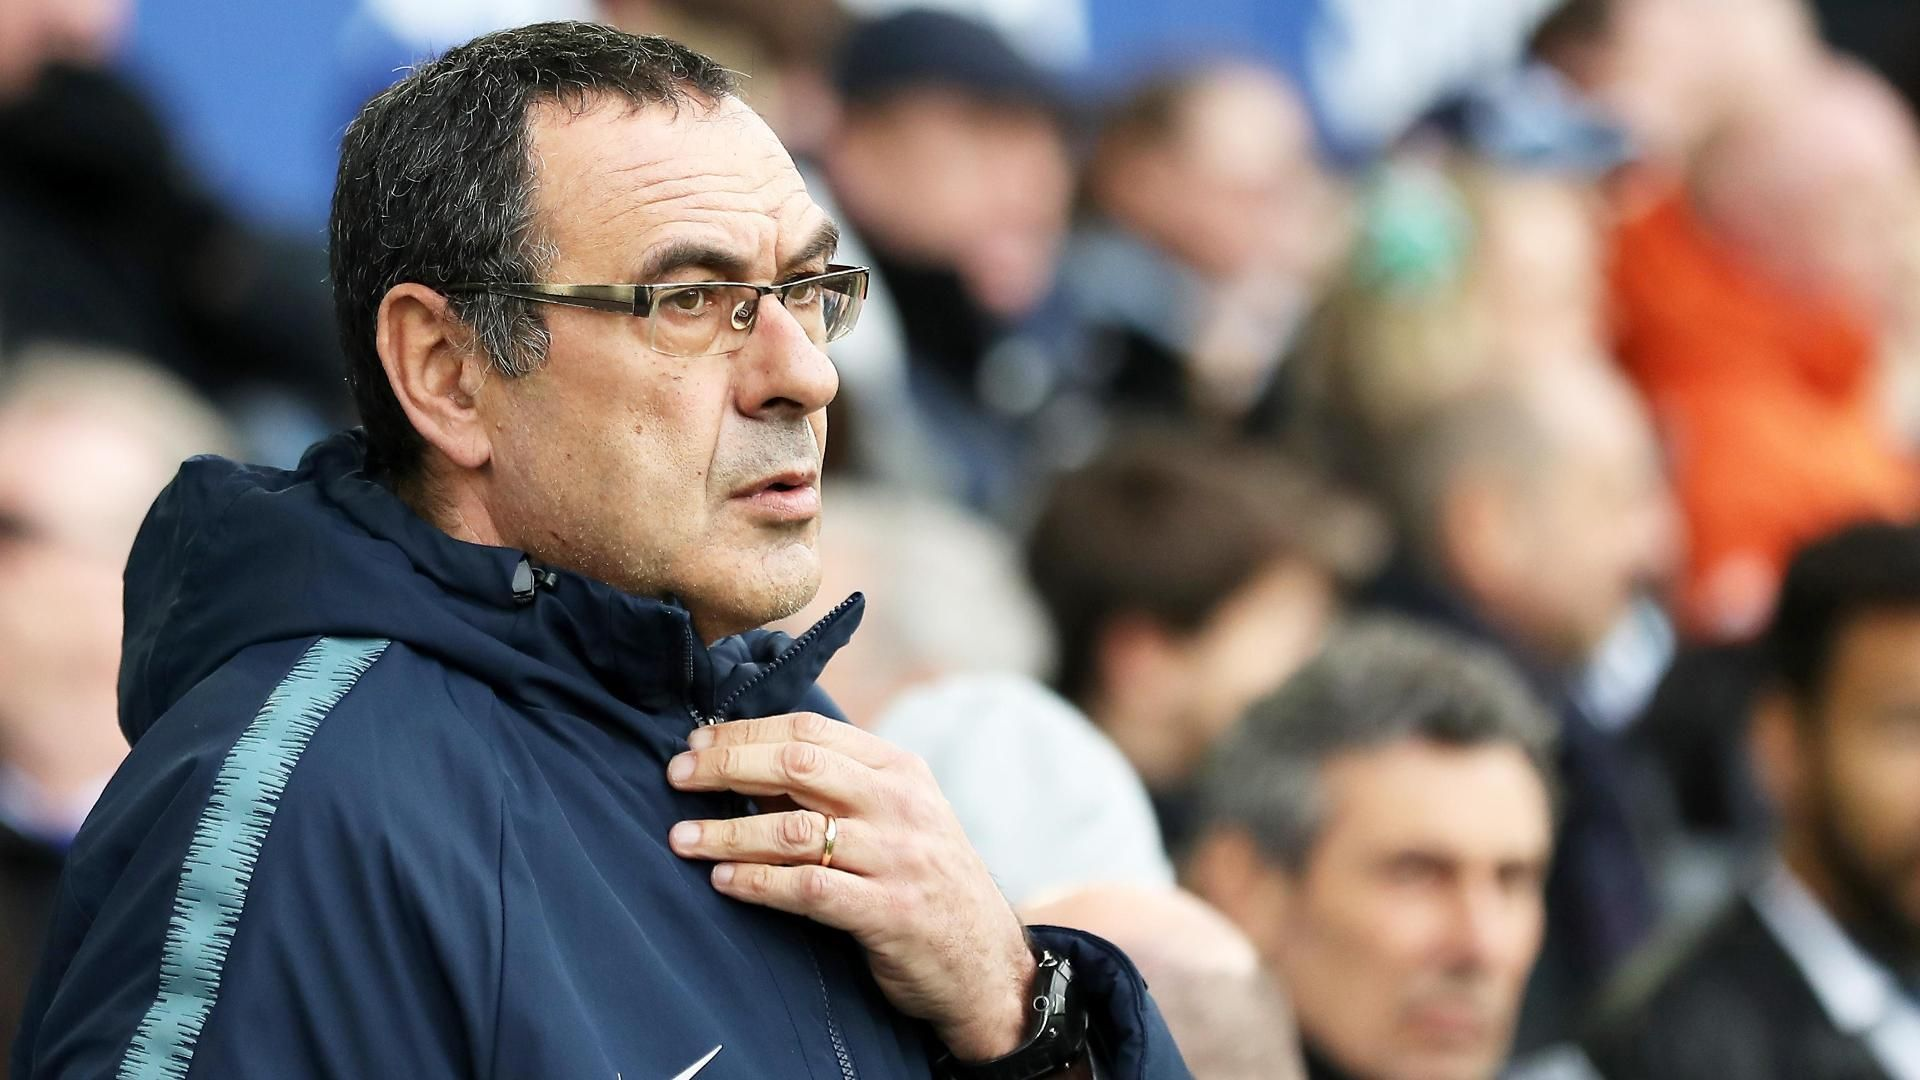 Europa League Sarri's last chance to save his job